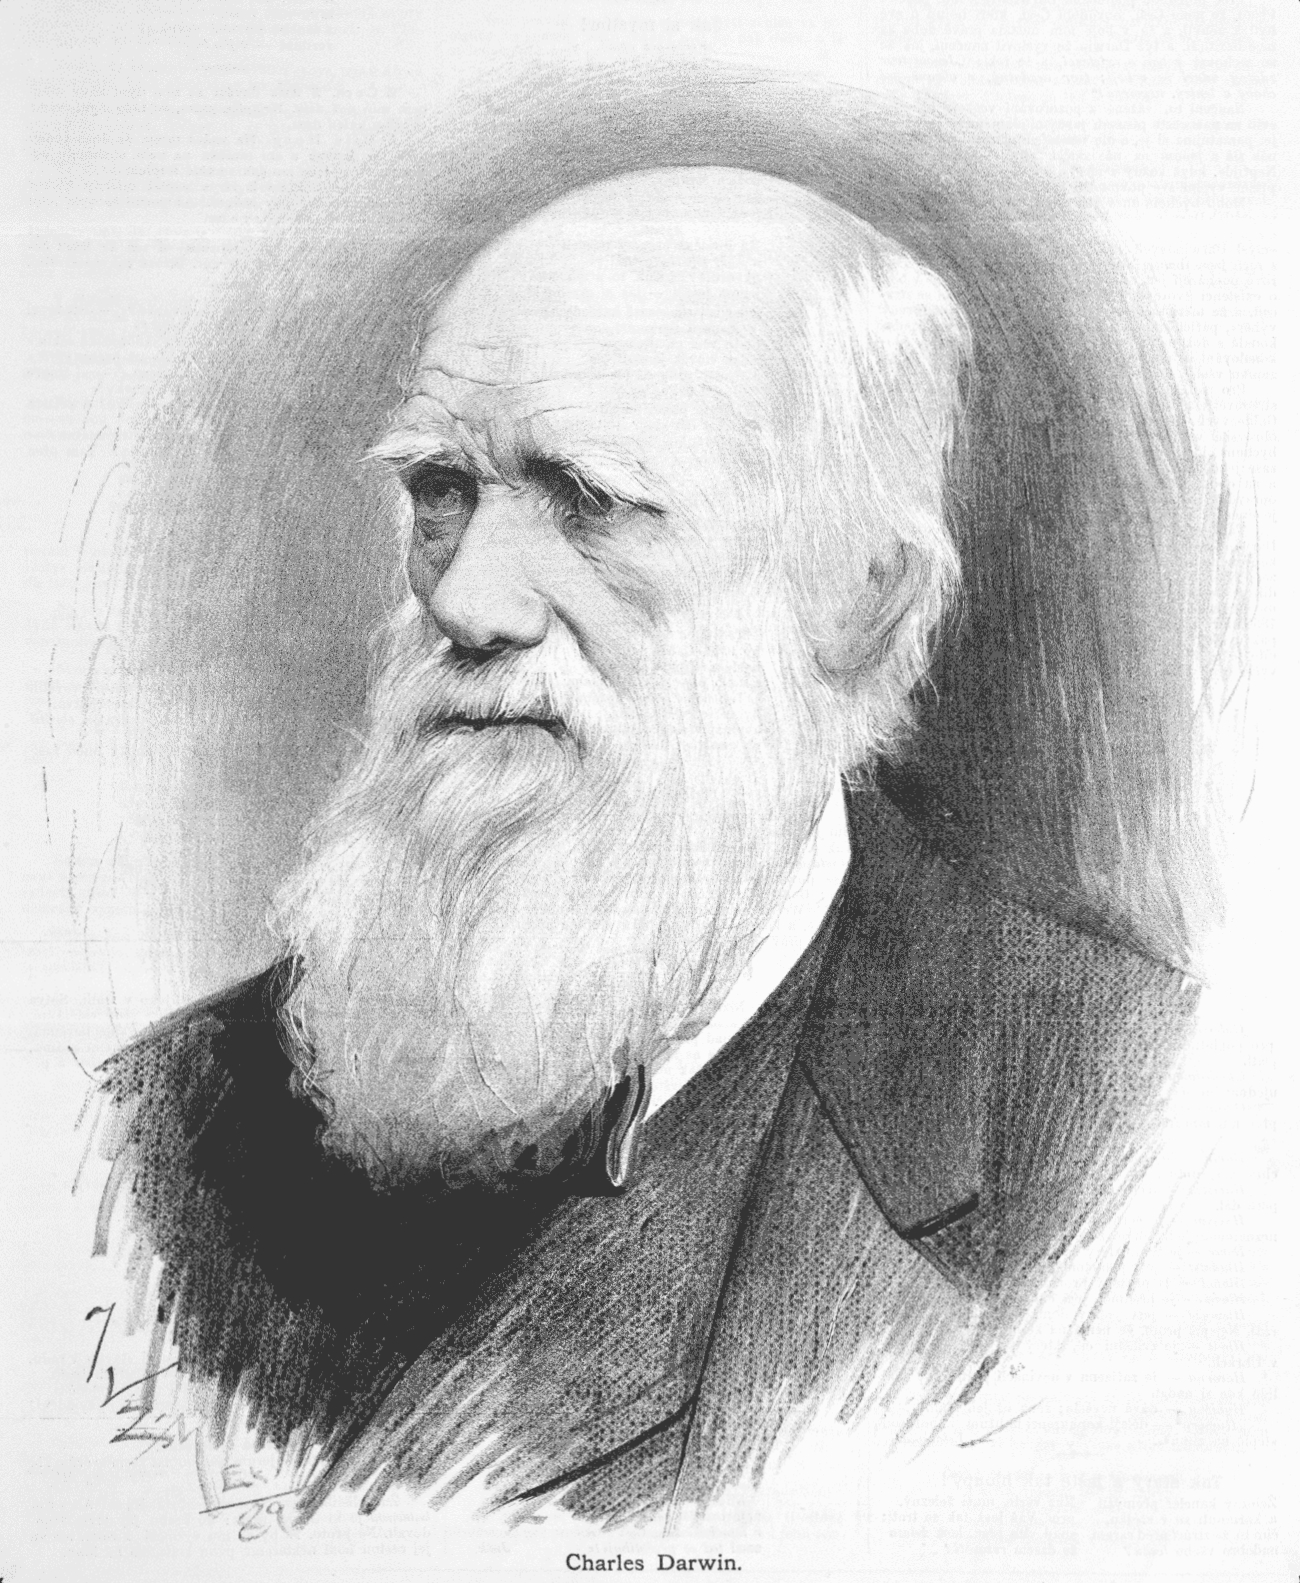 http://upload.wikimedia.org/wikipedia/commons/2/2e/Charles_Darwin_-_Jan_Vil%C3%ADmek.jpg